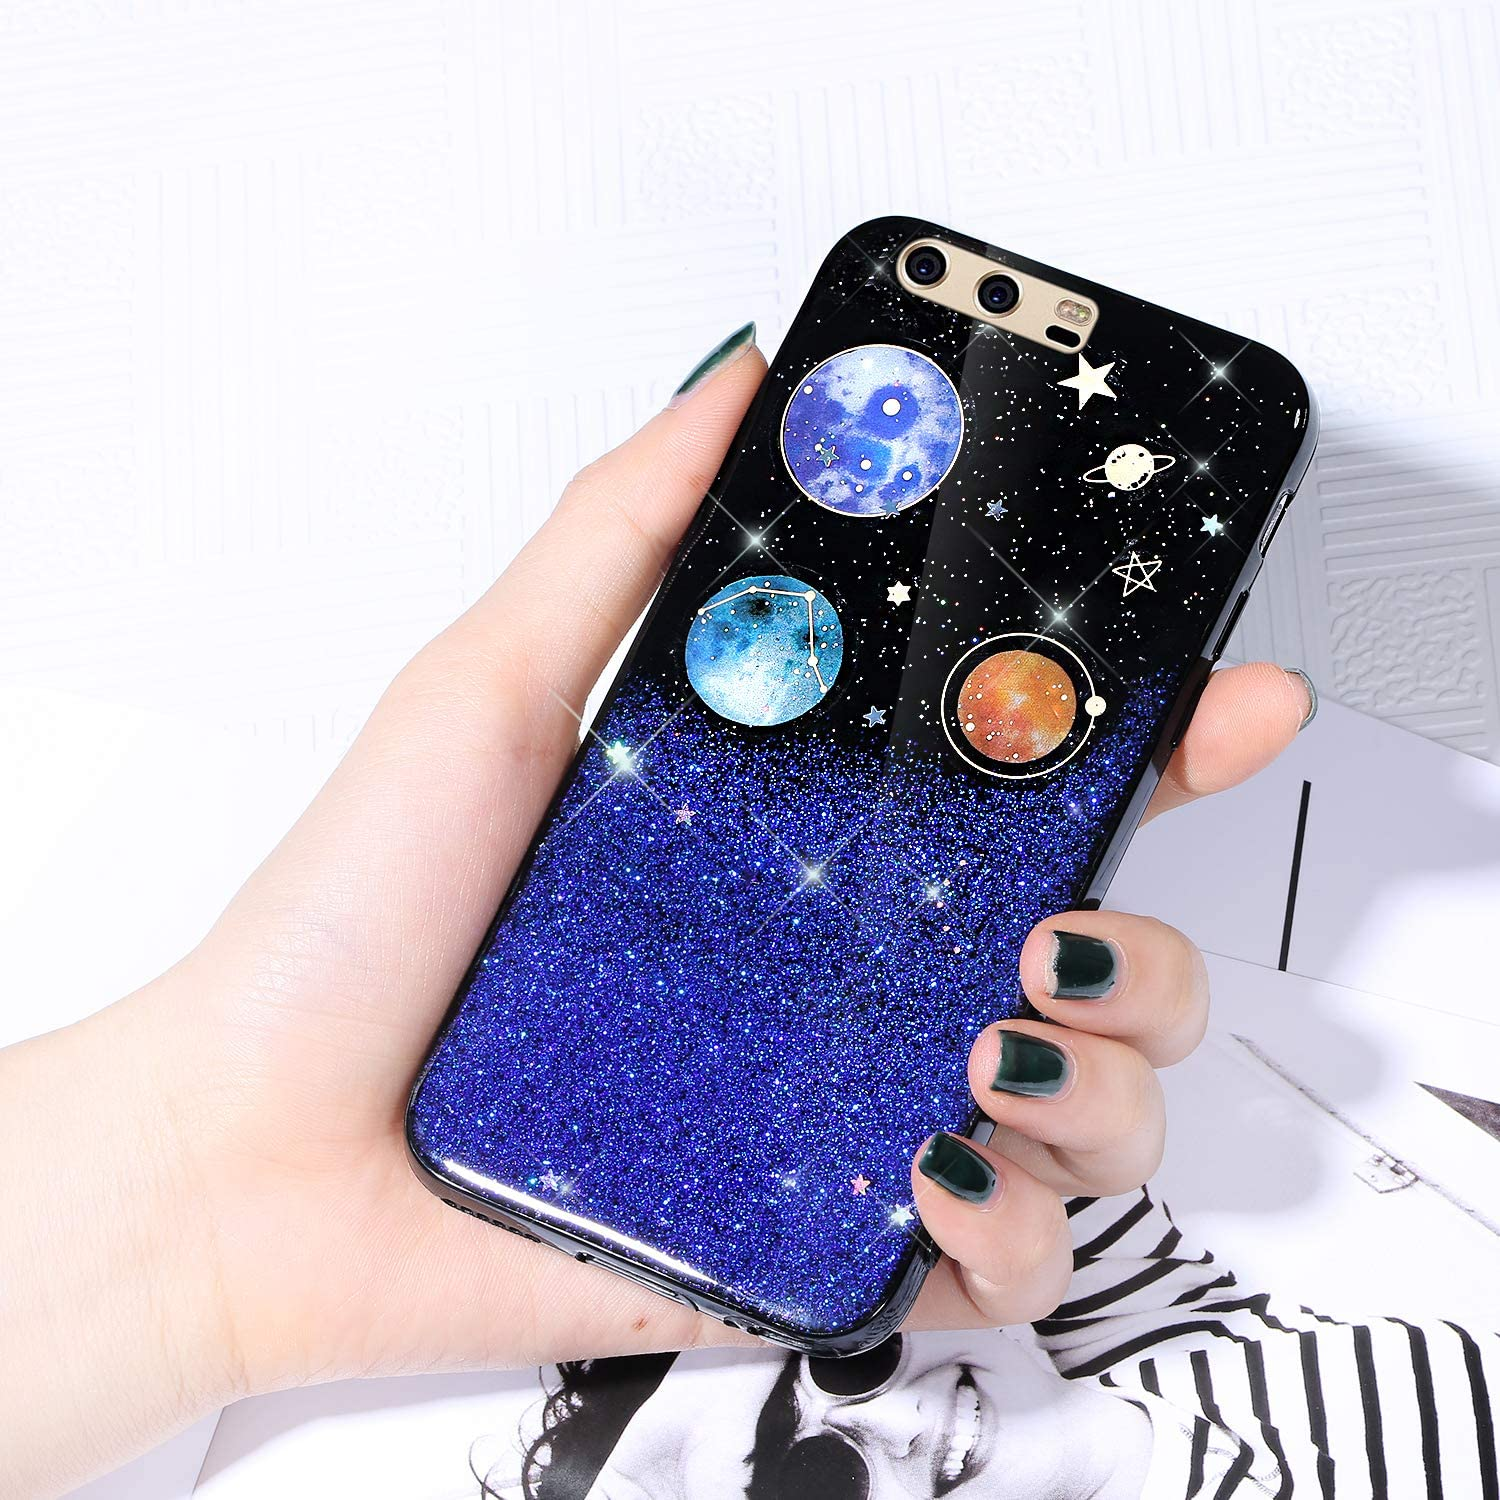 Case for 2021 new Huawei P10 Cover Starry Glitter Sky New sales Sparkle Shiny